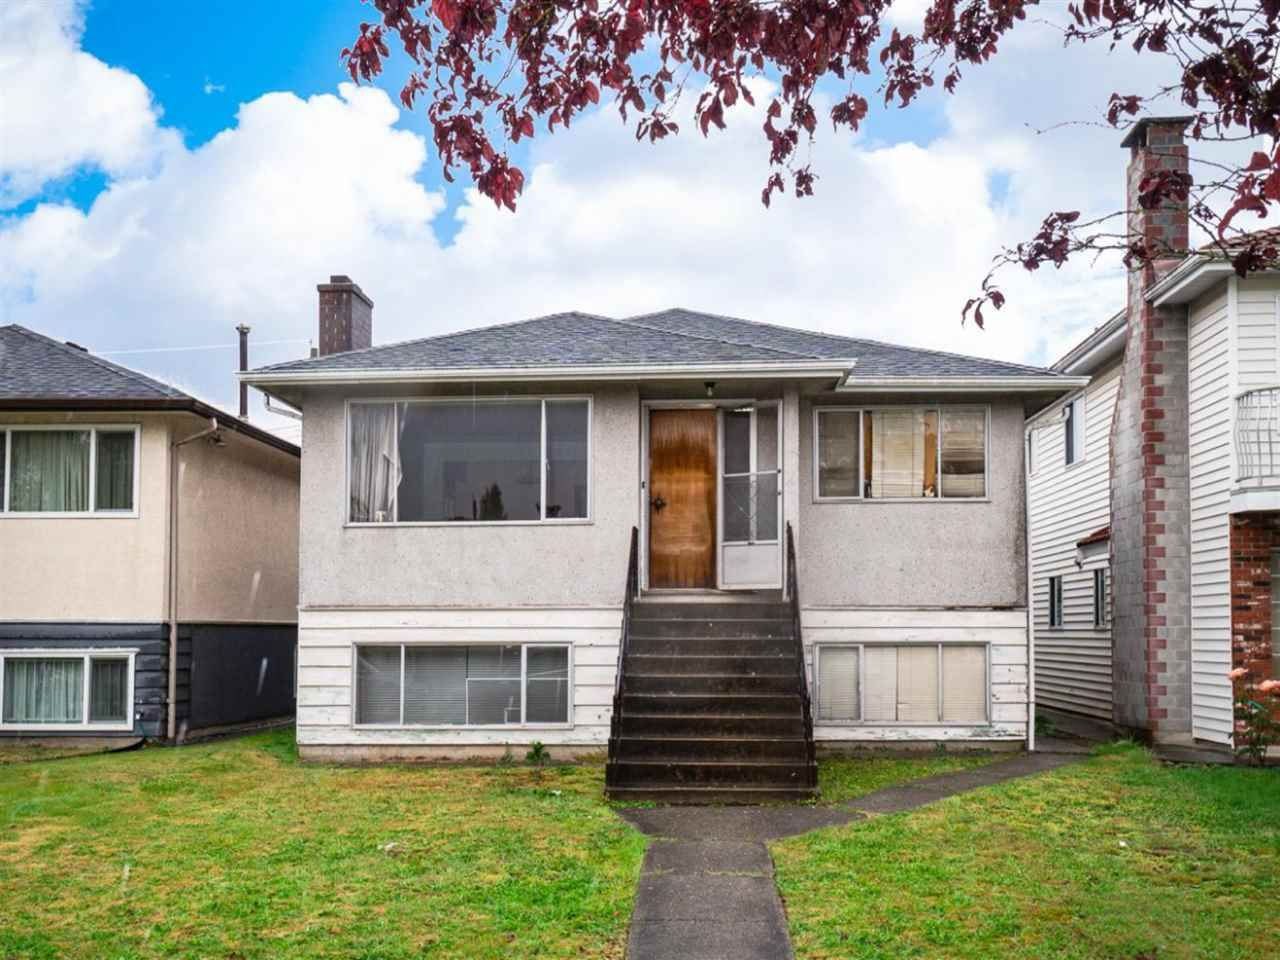 Main Photo: 2095 E 52ND Avenue in Vancouver: Killarney VE House for sale (Vancouver East)  : MLS®# R2585772